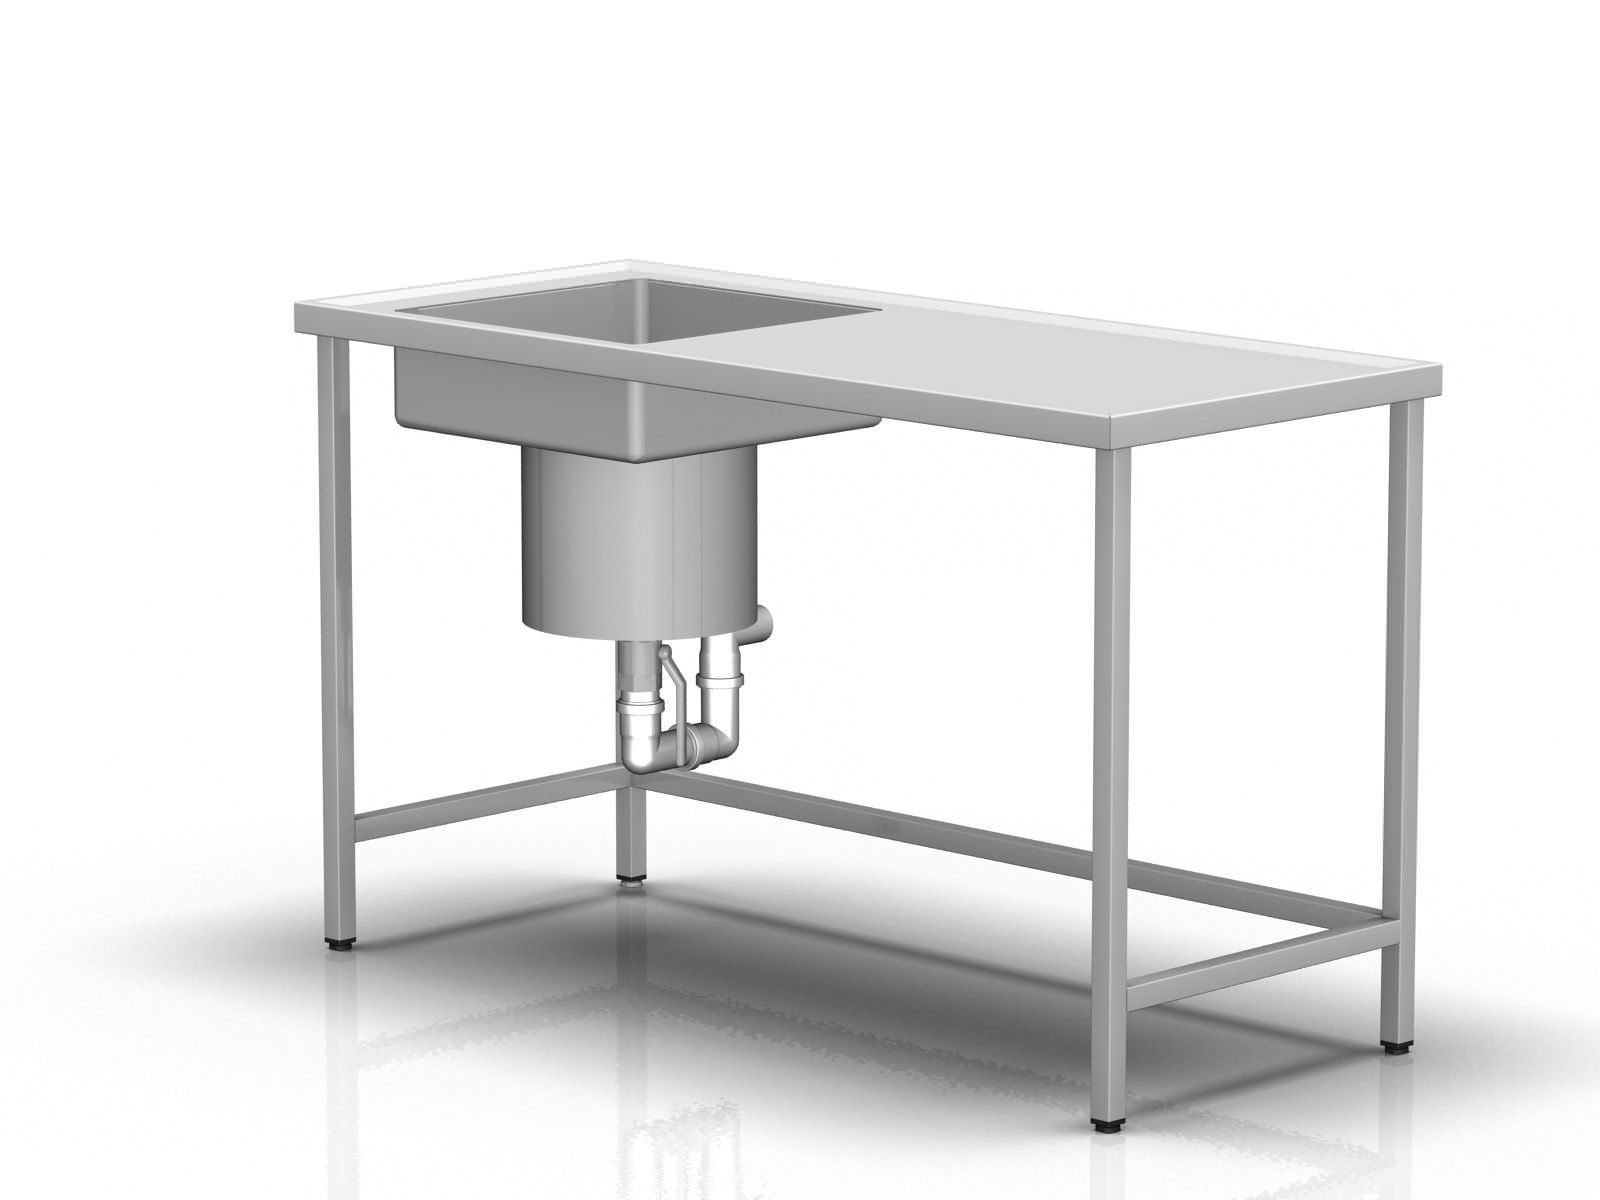 steel stainless kitchen work x htm p table inch with backsplash pr prep tables restaurant